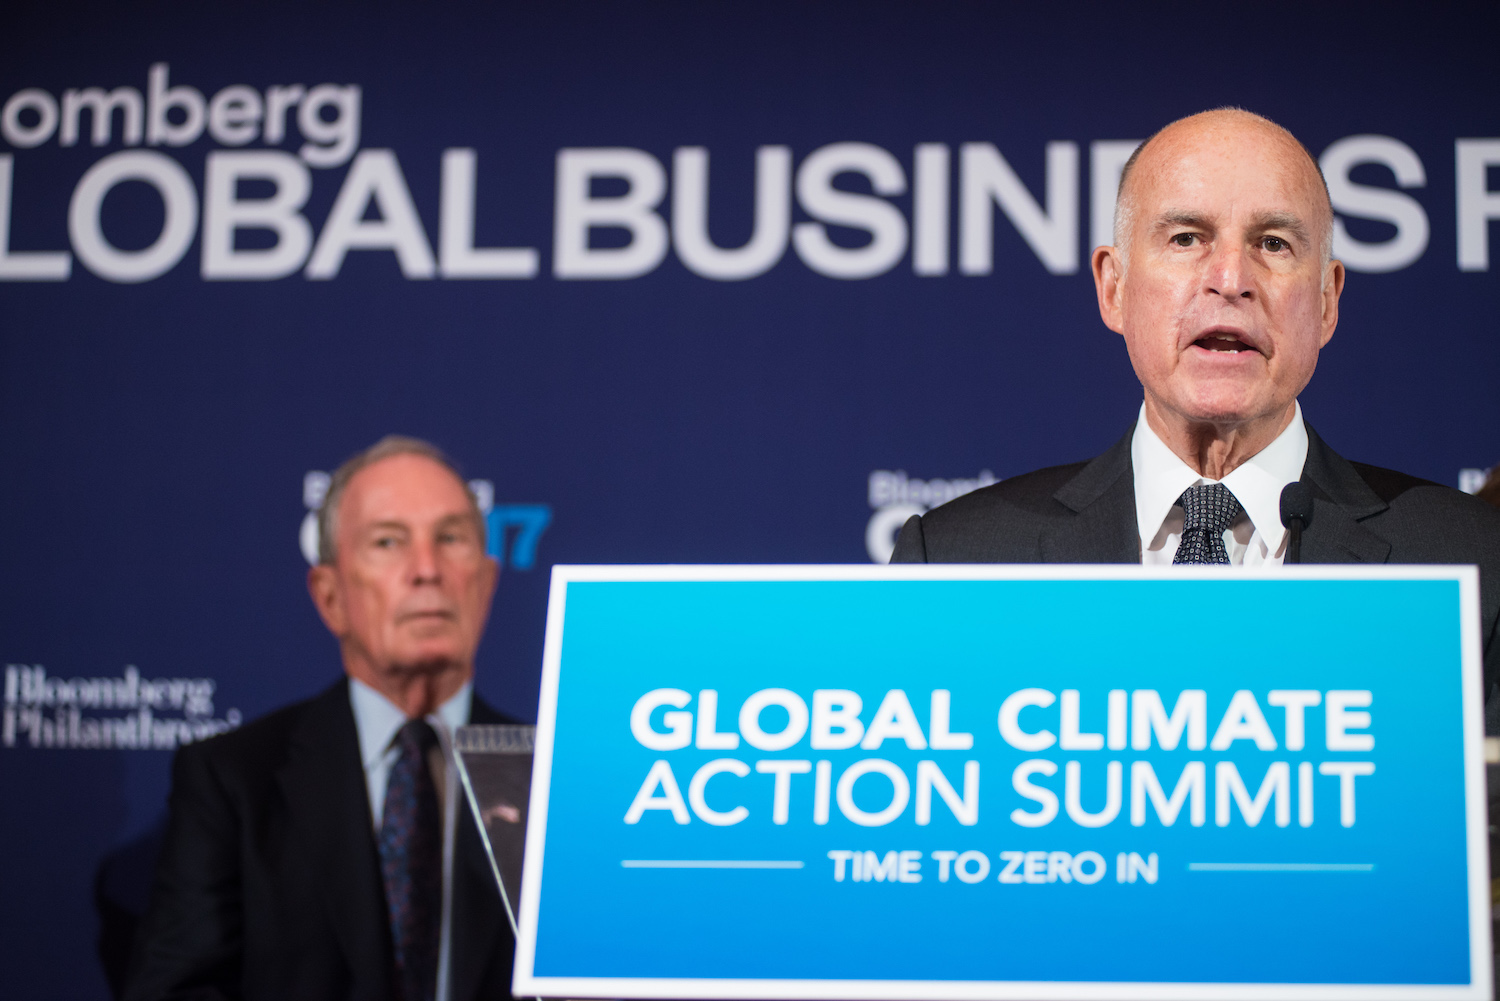 Mike Bloomberg and Jerry Brown, Governor of California, announce the co-chairs of the the 2018 Global Climate Action Summit at the Bloomberg Global Business Forum.